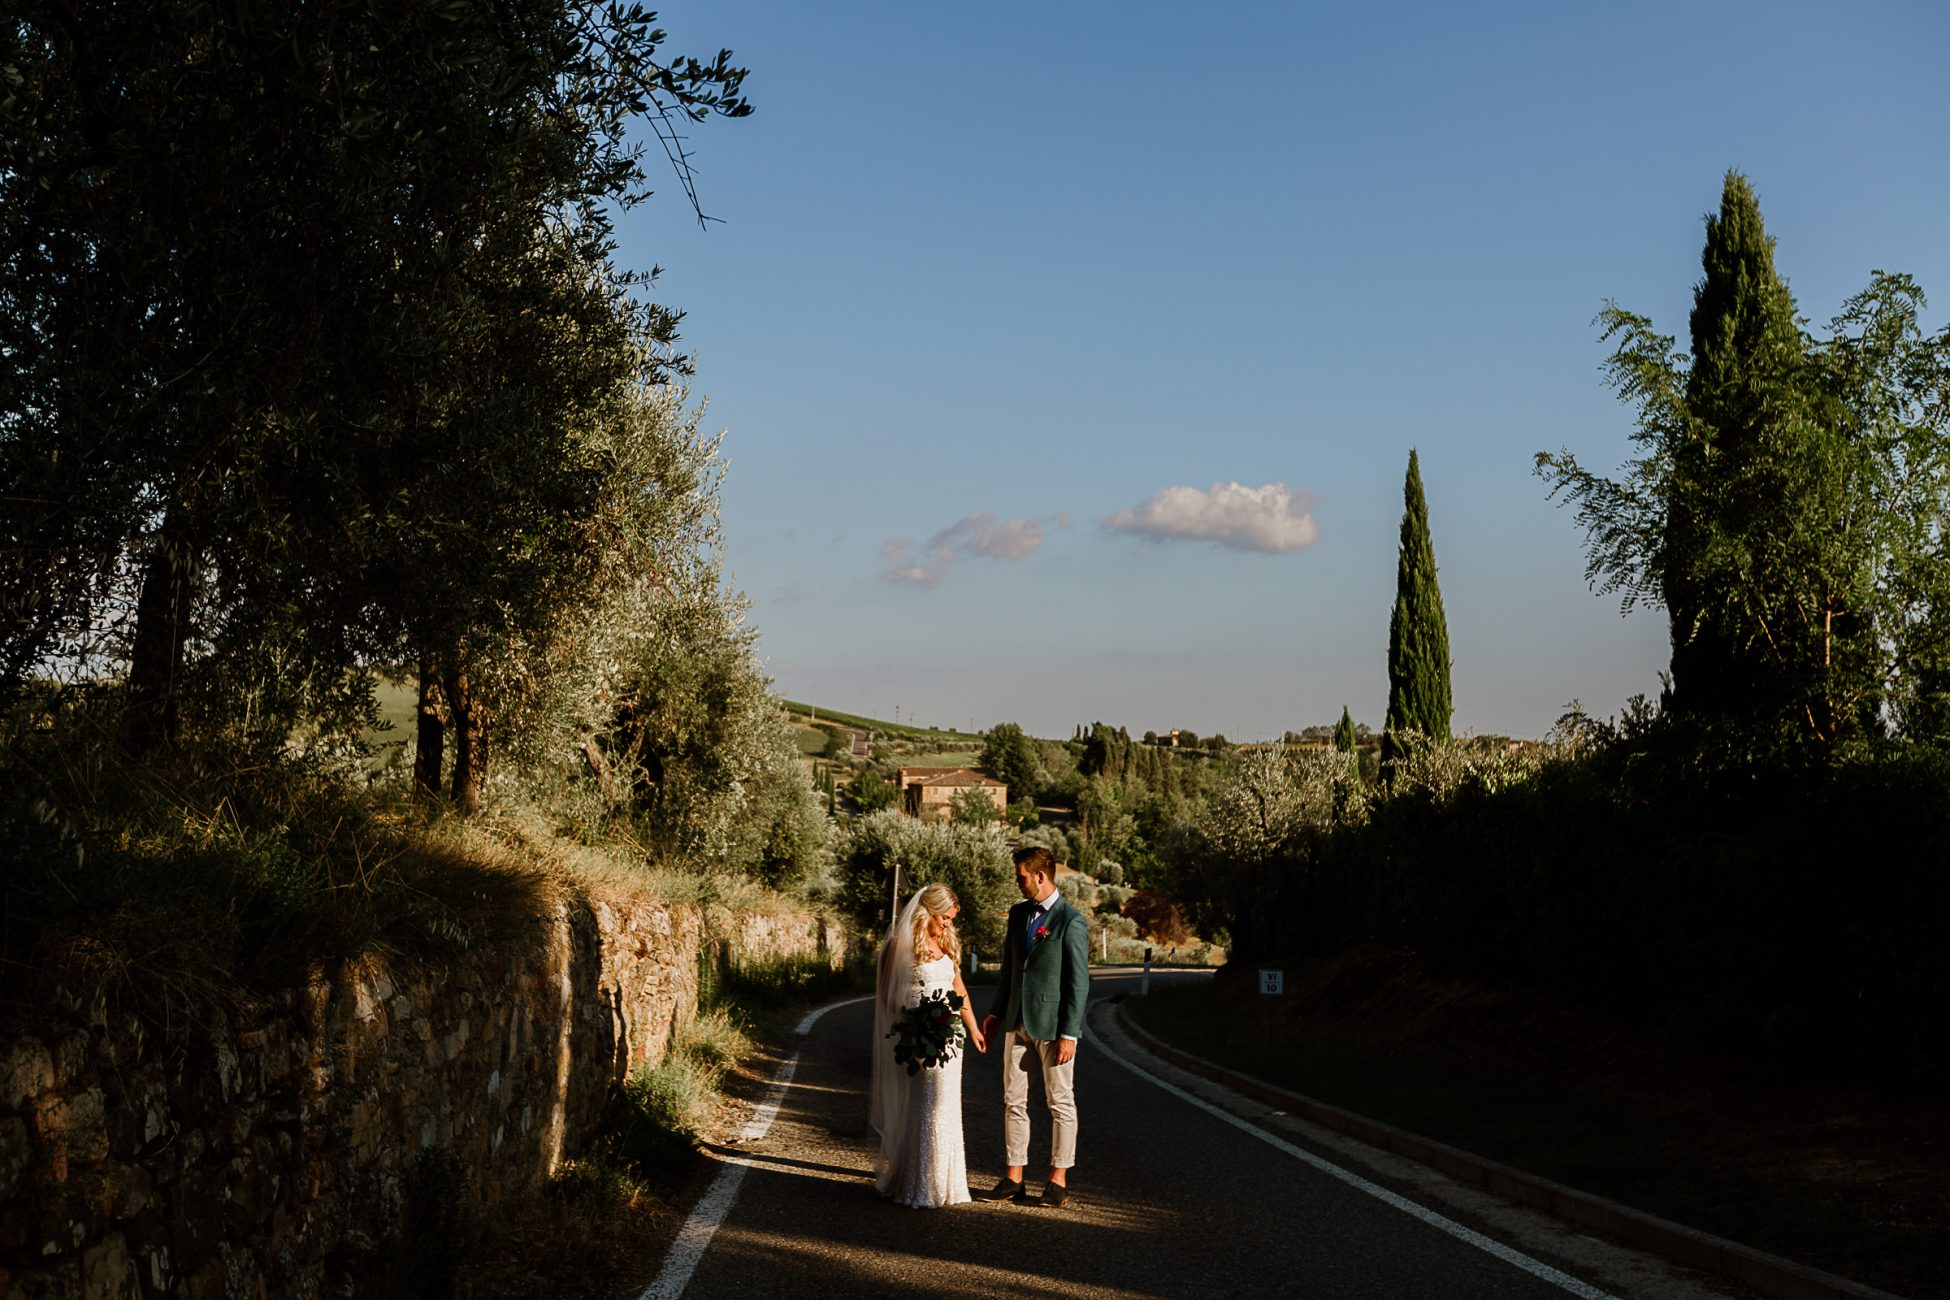 bride and groom standing in a shaft of sunlight on a country road in Tuscany, Italy